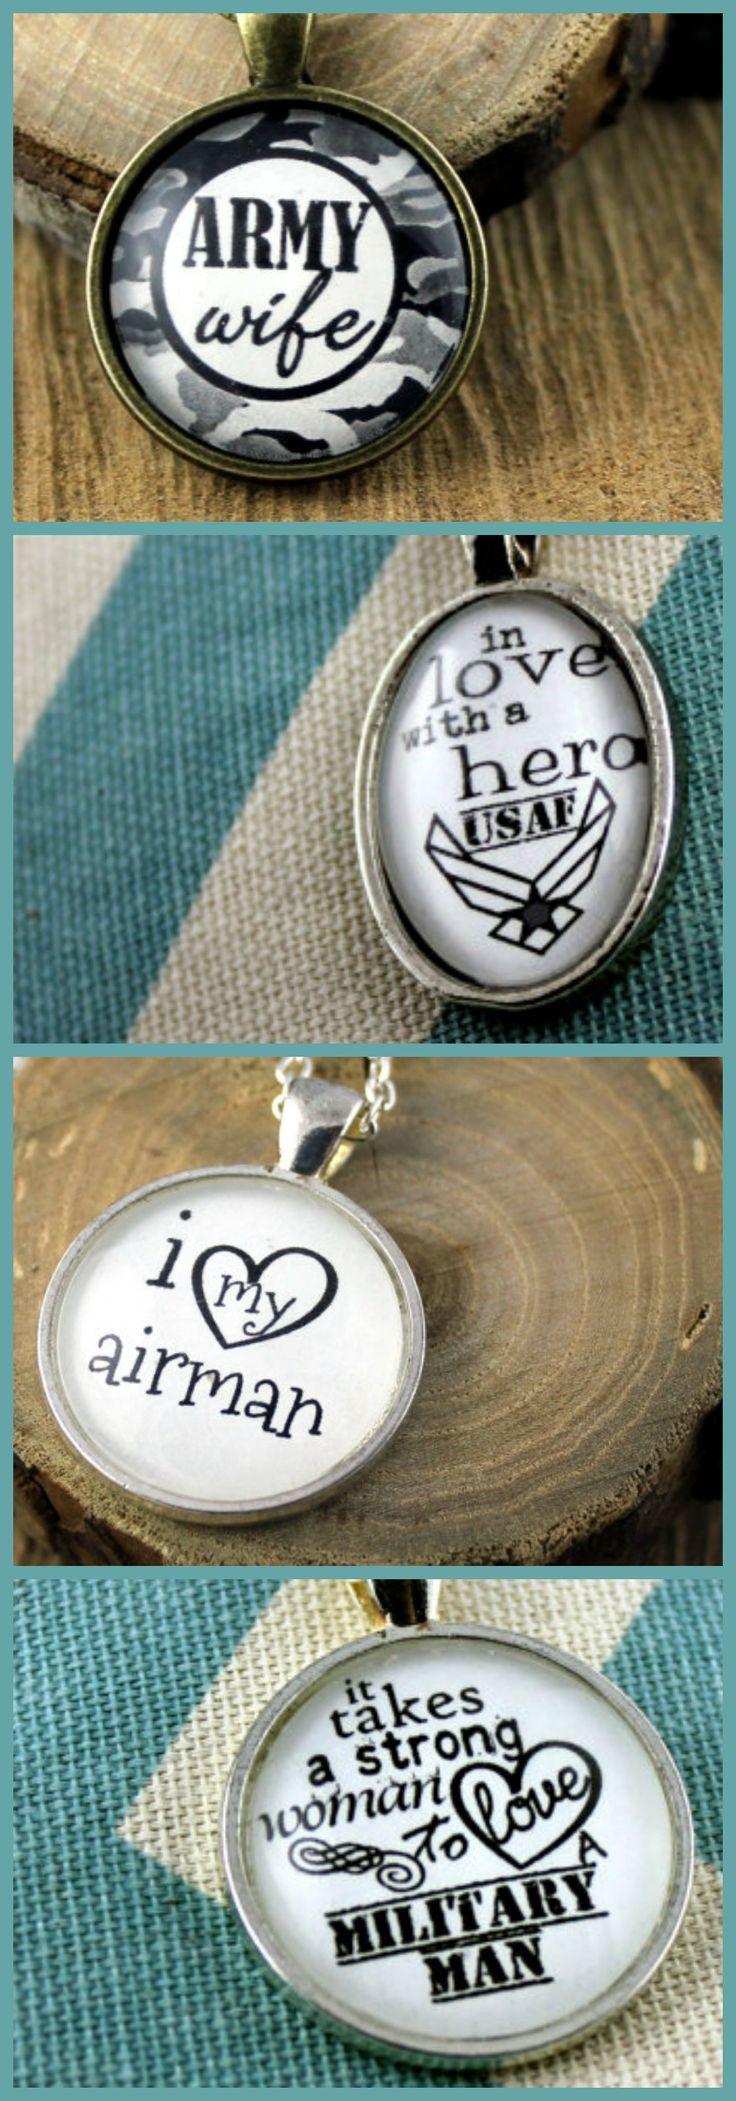 "Military Spouse or Military Wife Pendants | milspouse necklace | This darling Hymn Drop vintage inspired pendant is approx 1"" X 1"" (25mm X 25mm).  The fitted glass overlay helps this Hymn Drop shine brightly and adds the perfect weight.  Antique style chain included is 24 inches. Four military branches available #ad"